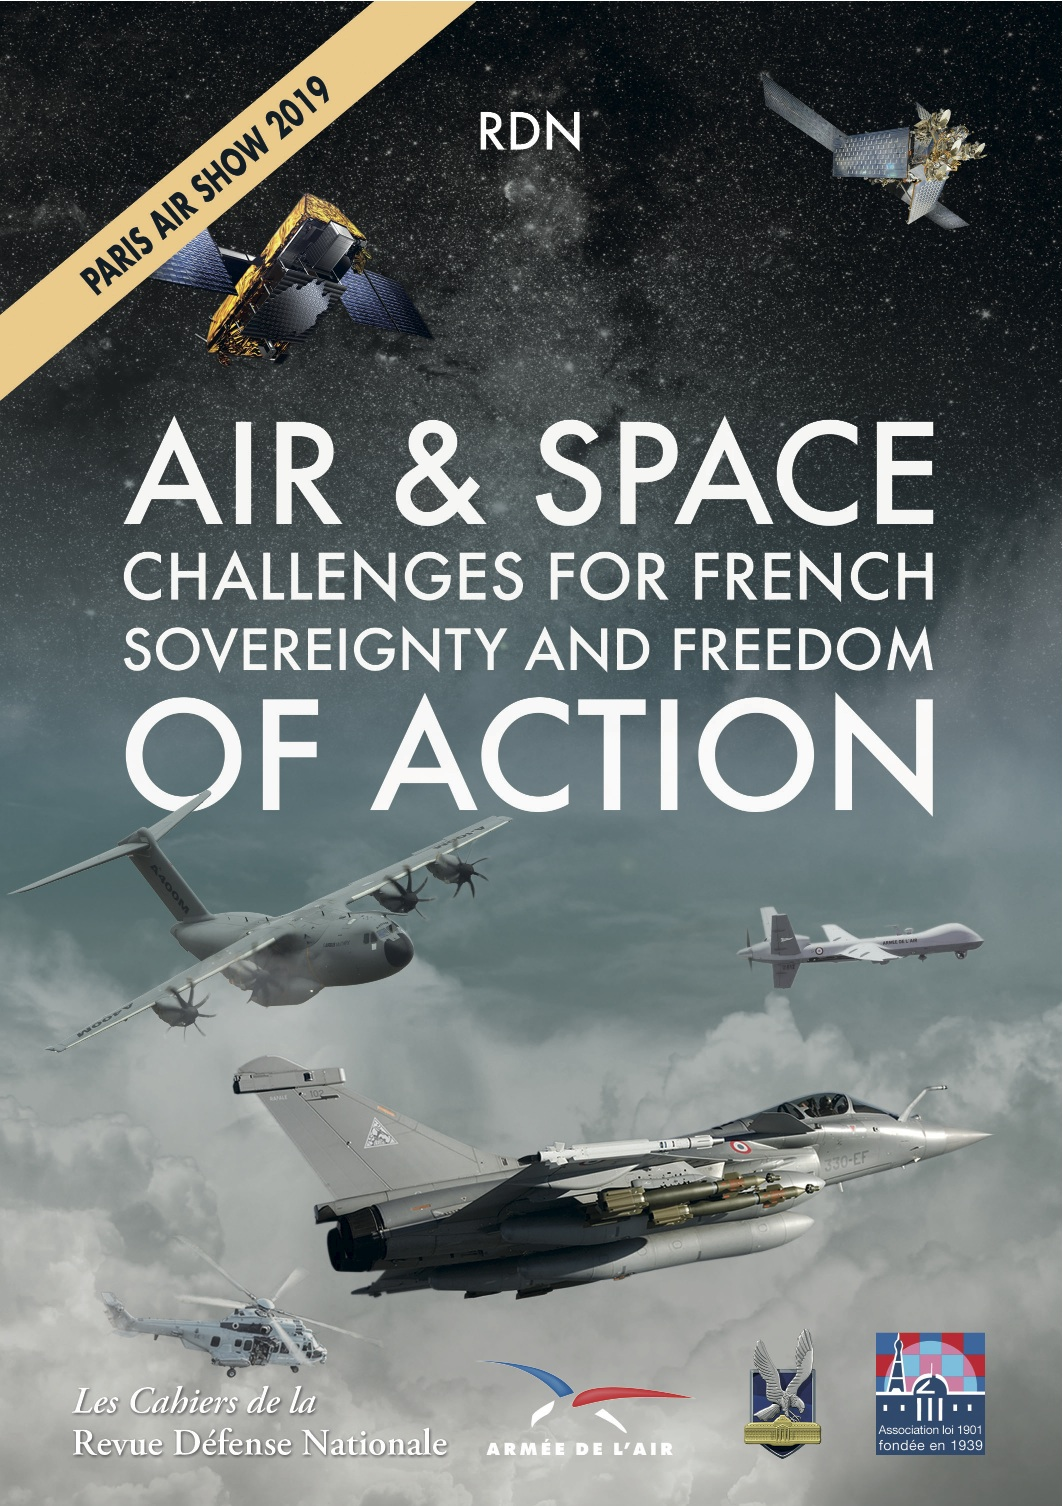 Le Bourget 2019—Air & Space Challenges for French Sovereignty and Freedom of Action